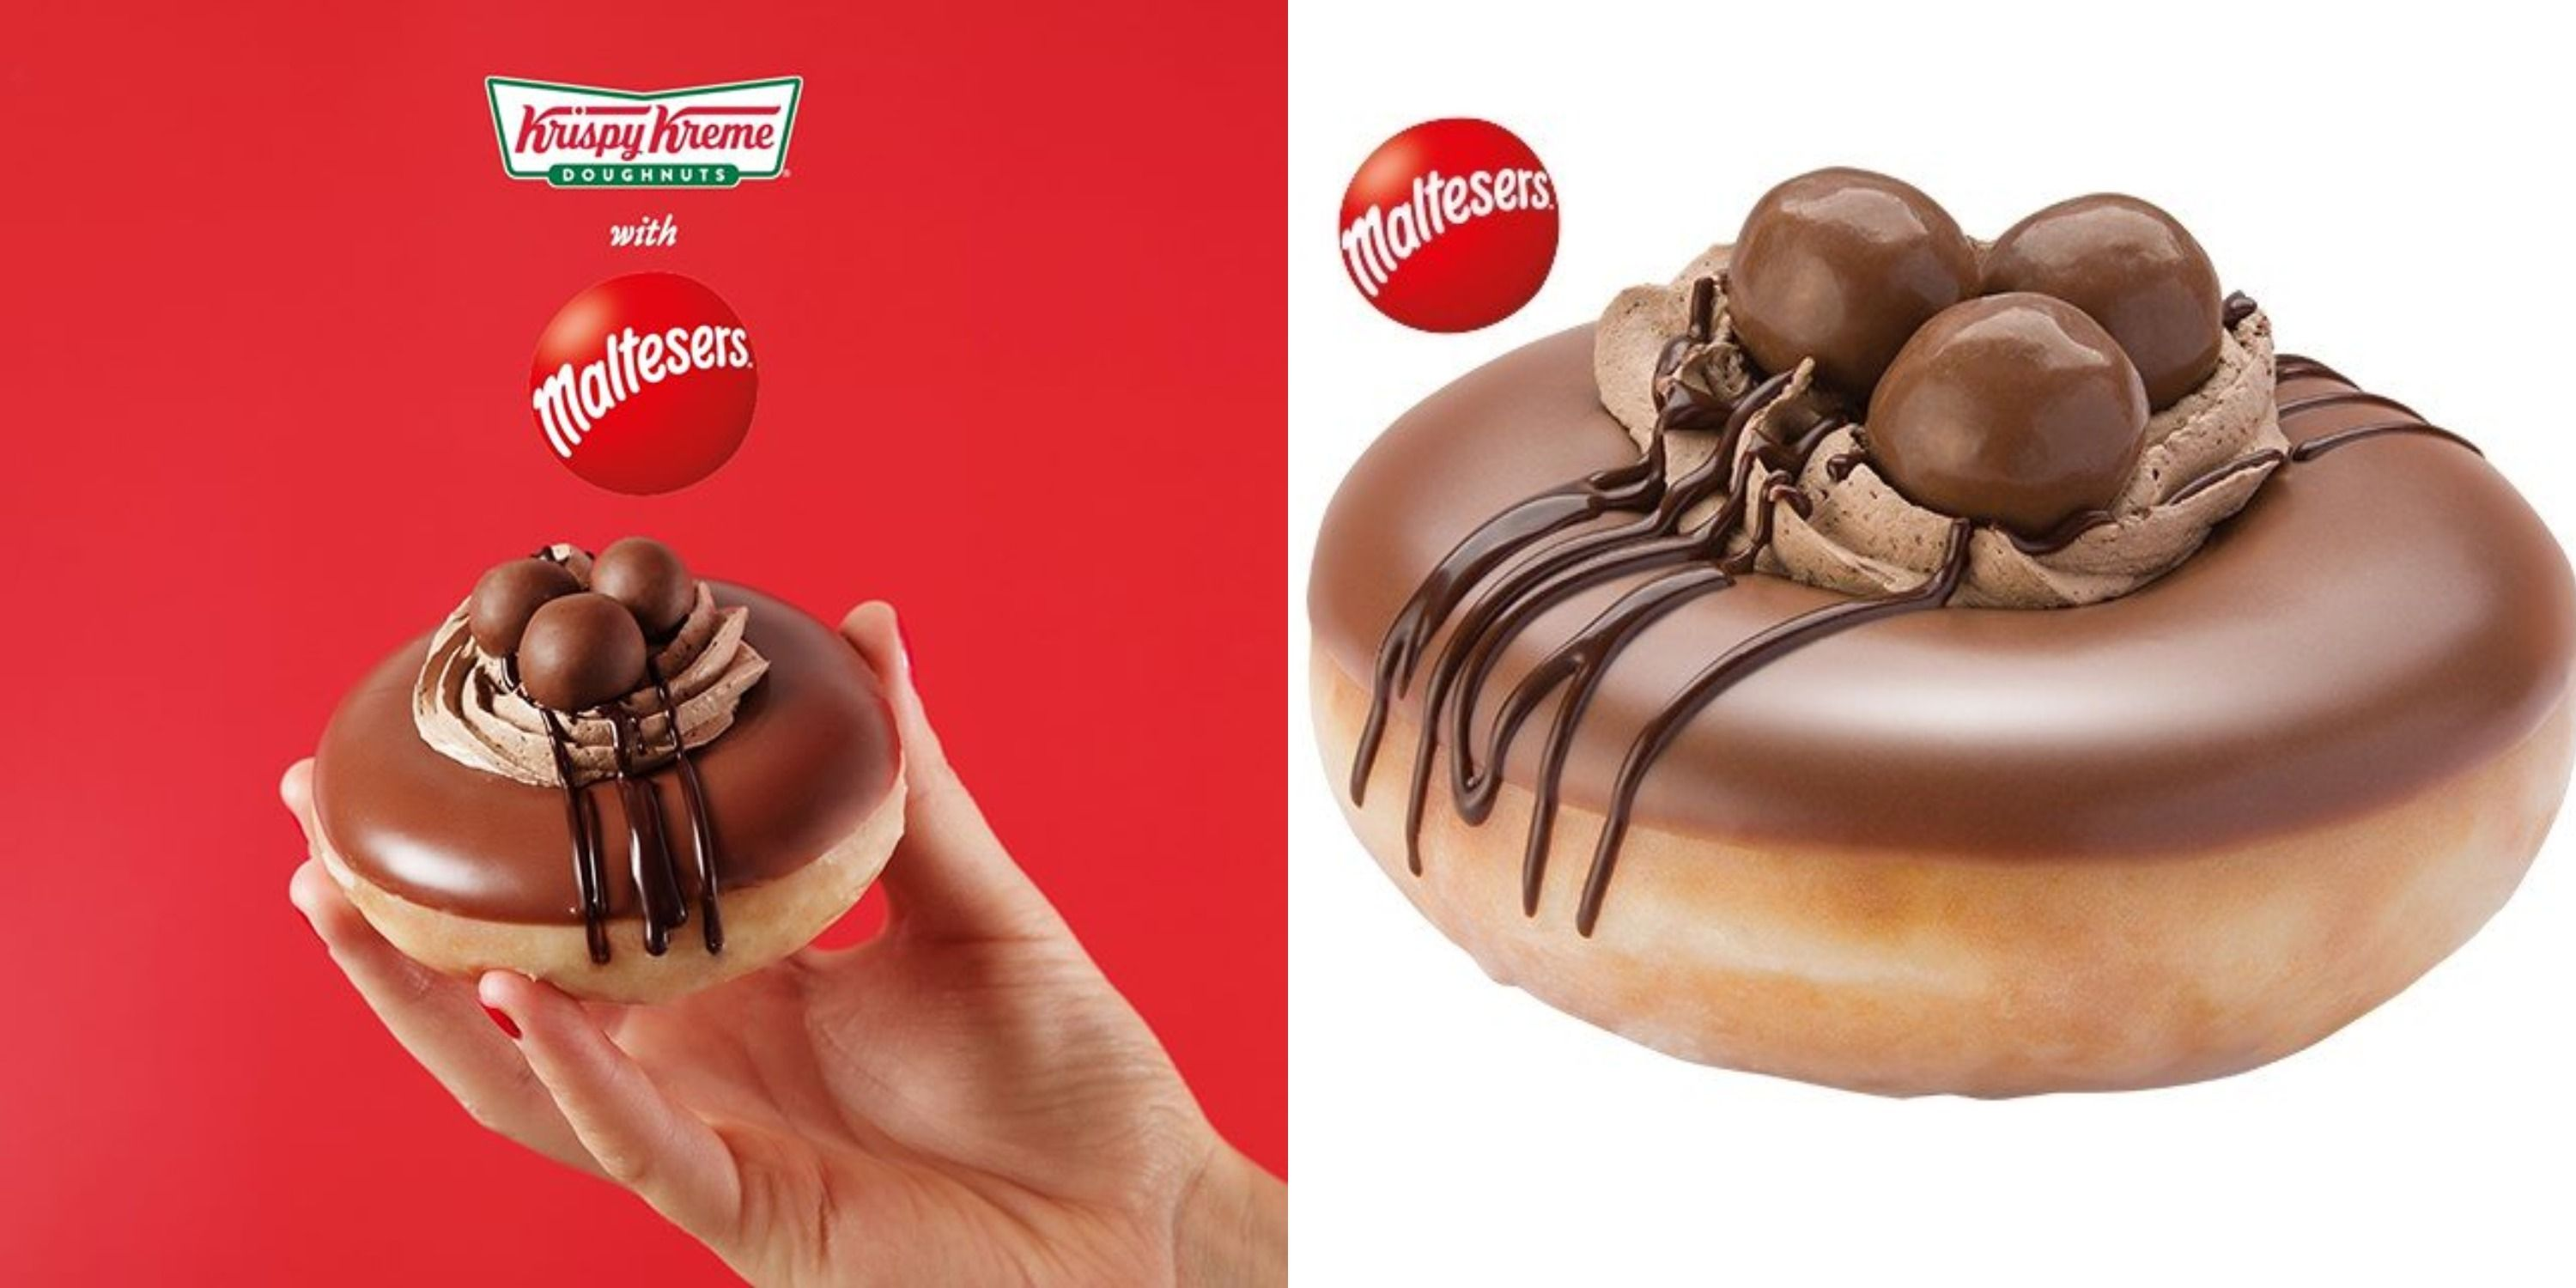 Krispy Kreme Released A New Donut Topped With Maltesers Chocolate